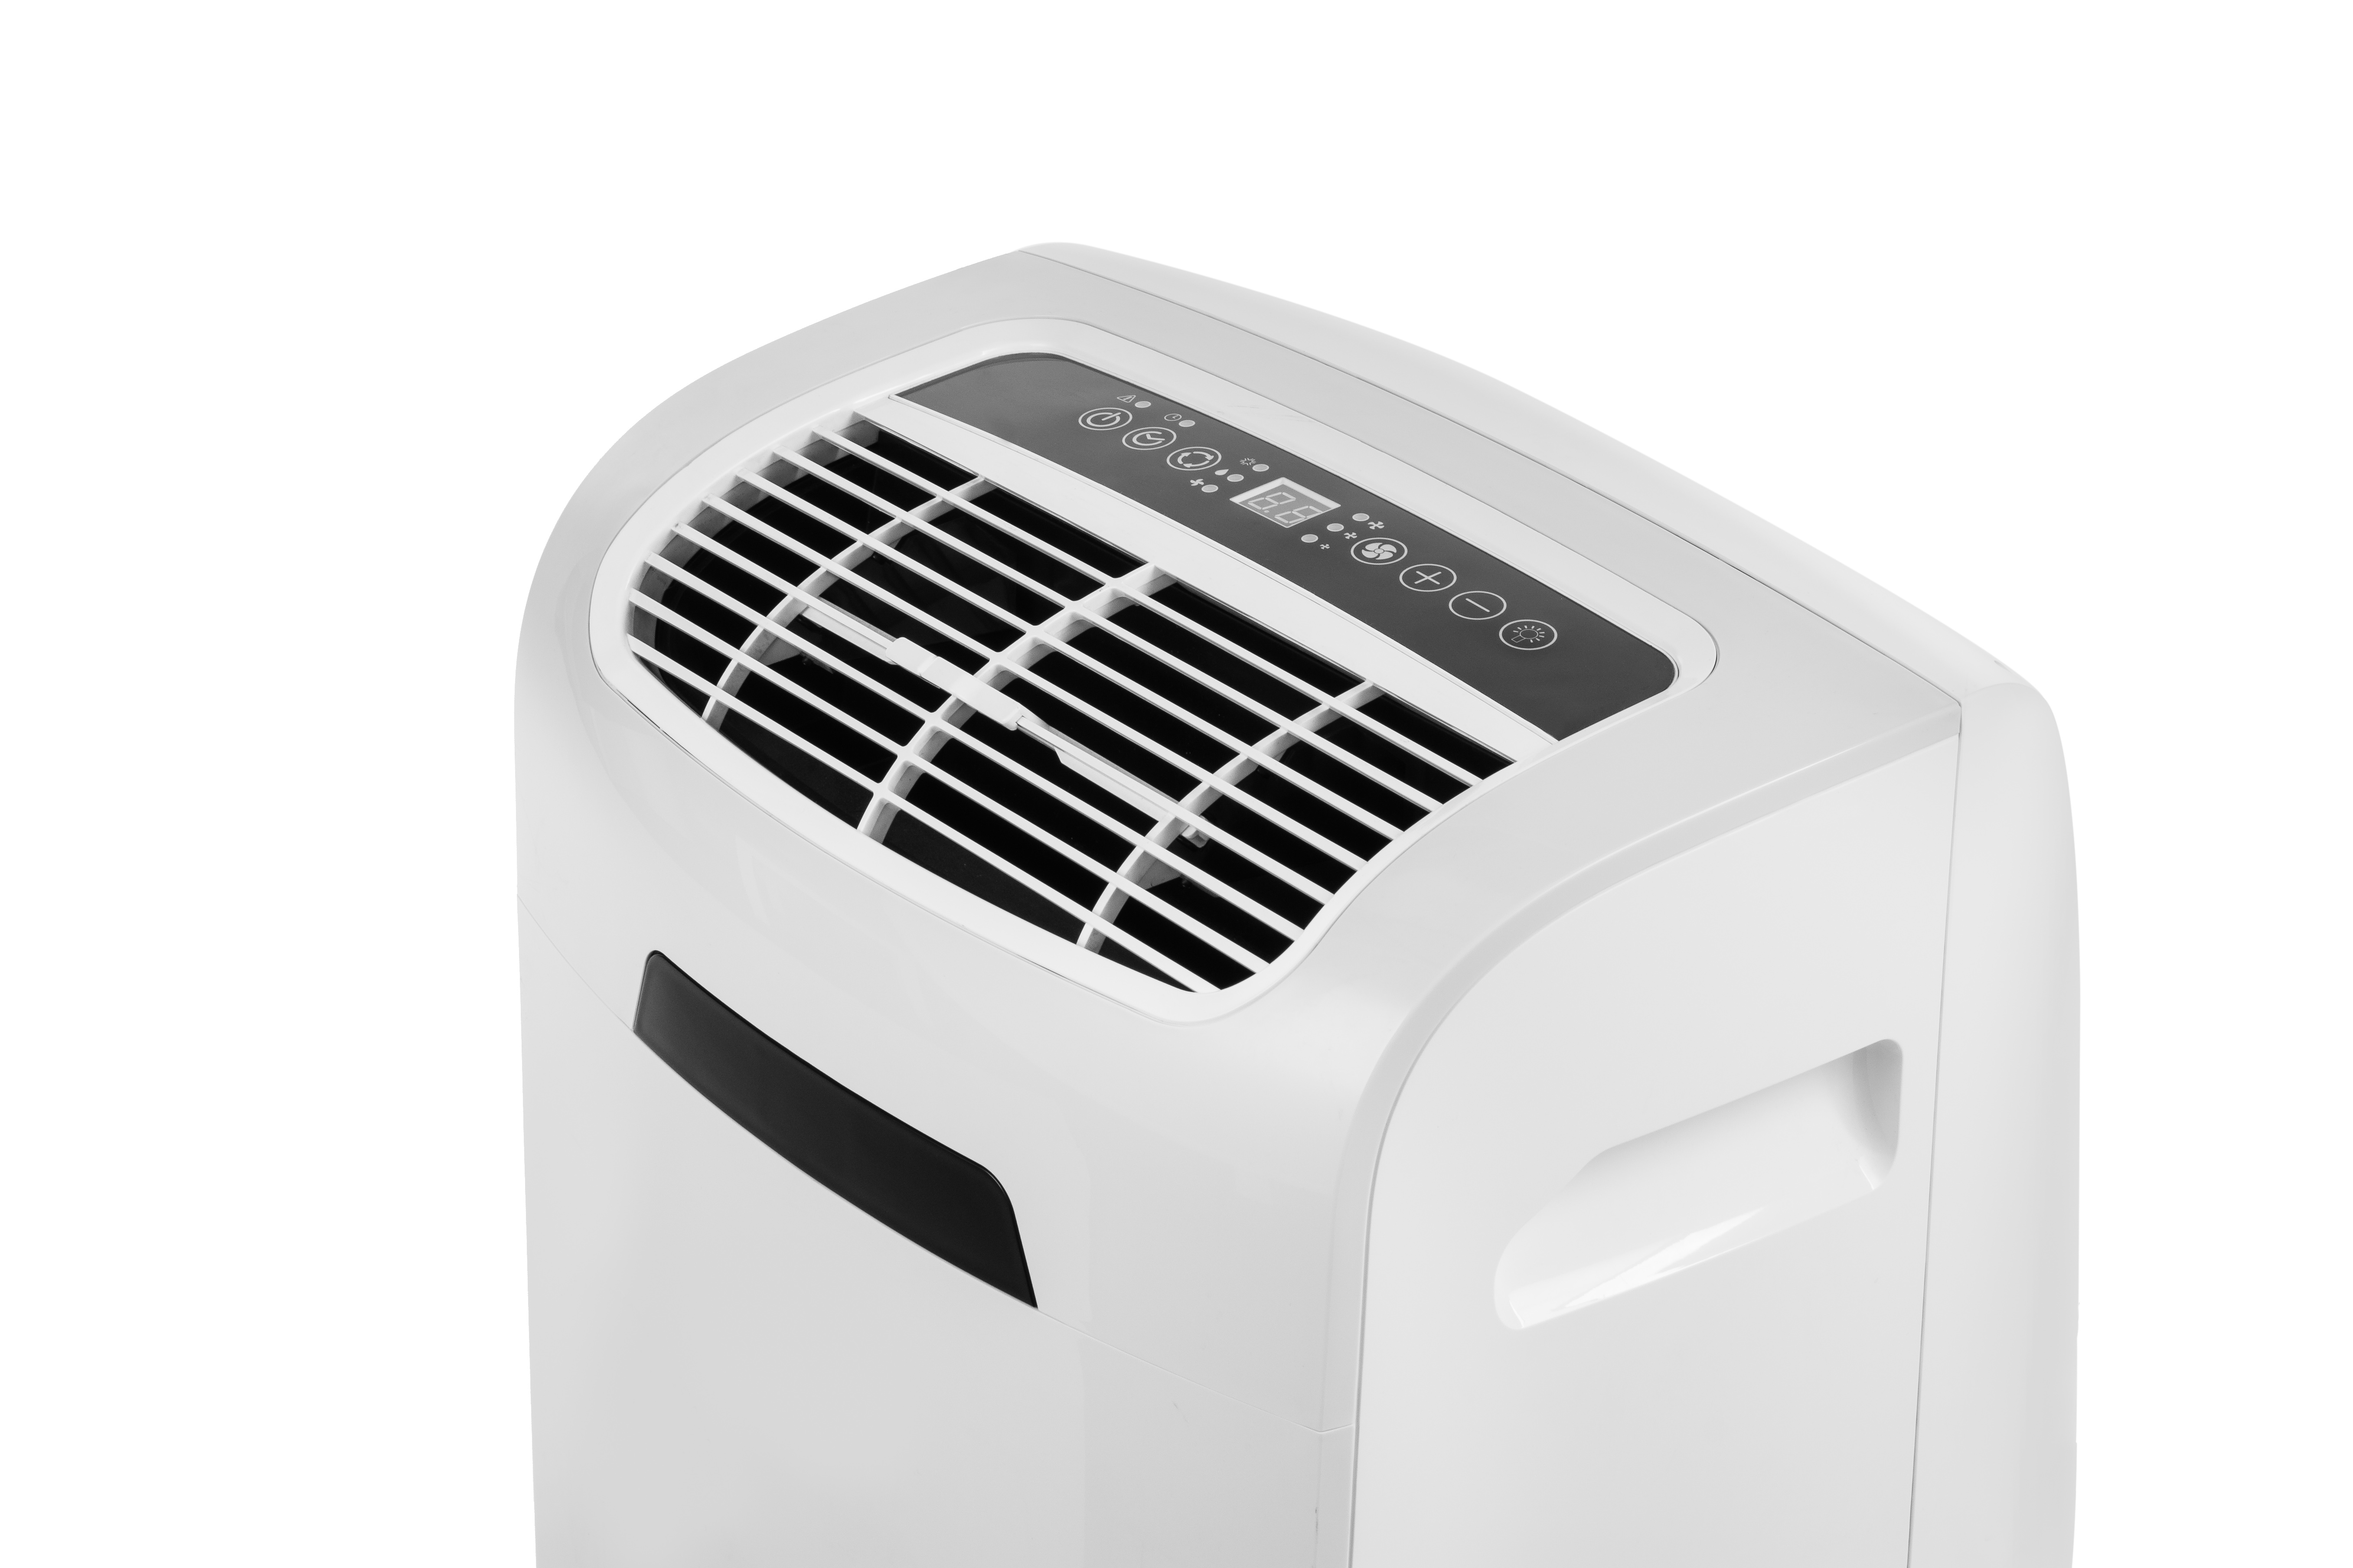 How Much Does It Cost to Run a Portable Air Conditioner? | Home